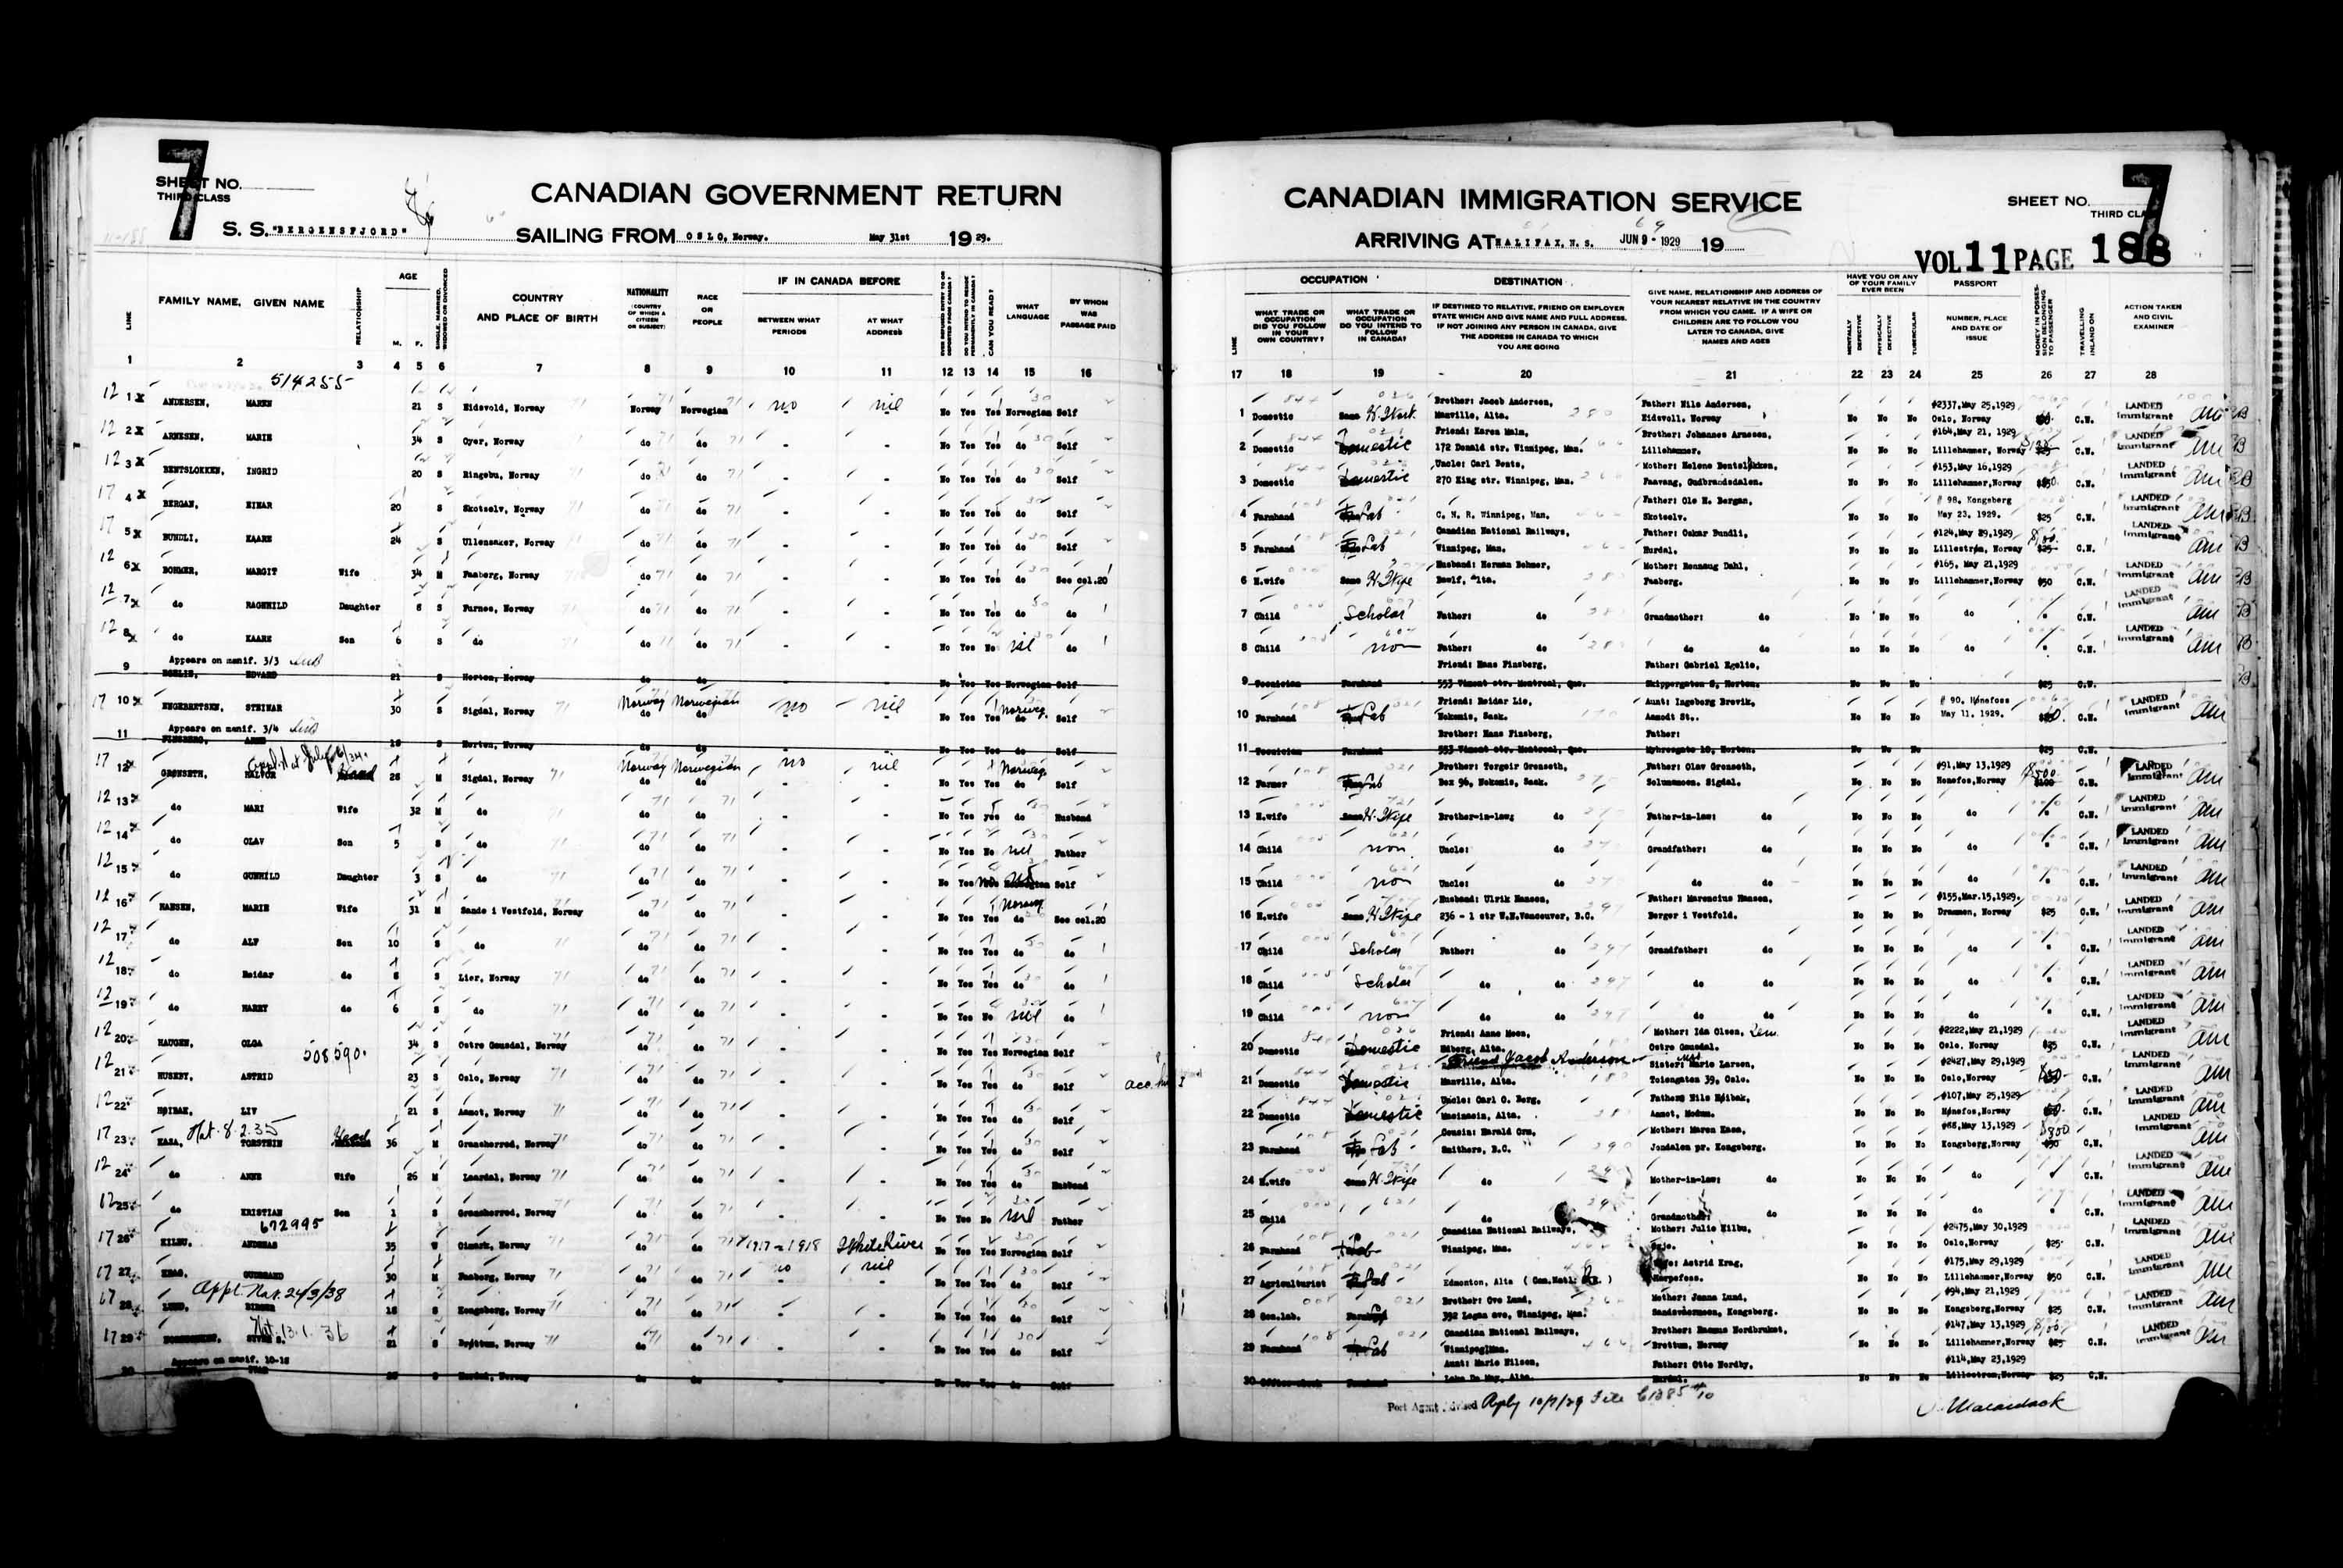 Title: Passenger Lists: Halifax (1925-1935) - Mikan Number: 134853 - Microform: t-14820